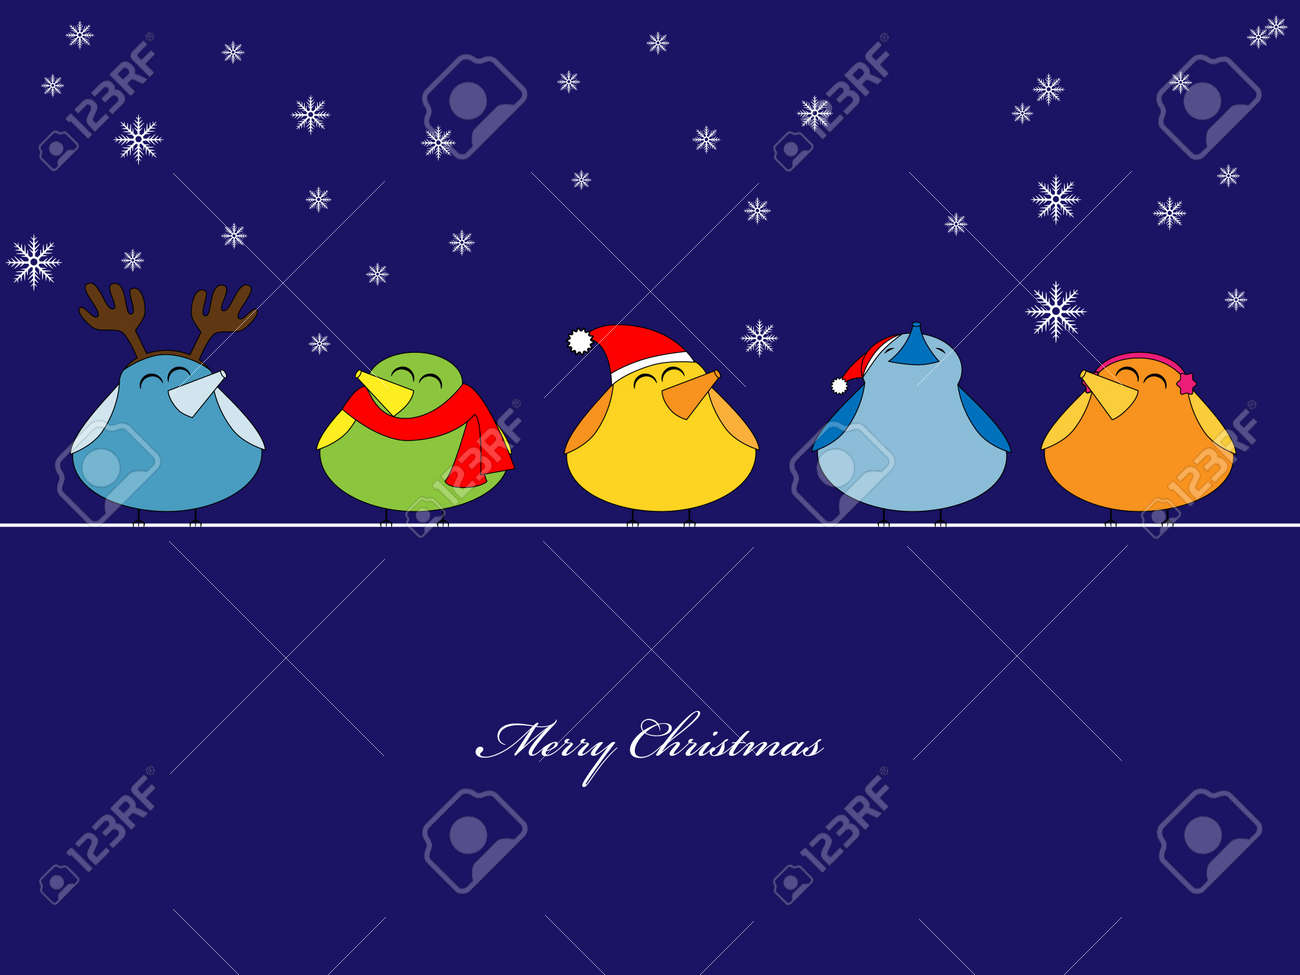 picture of birds singing christmas songs on blue background Stock Vector - 8265625